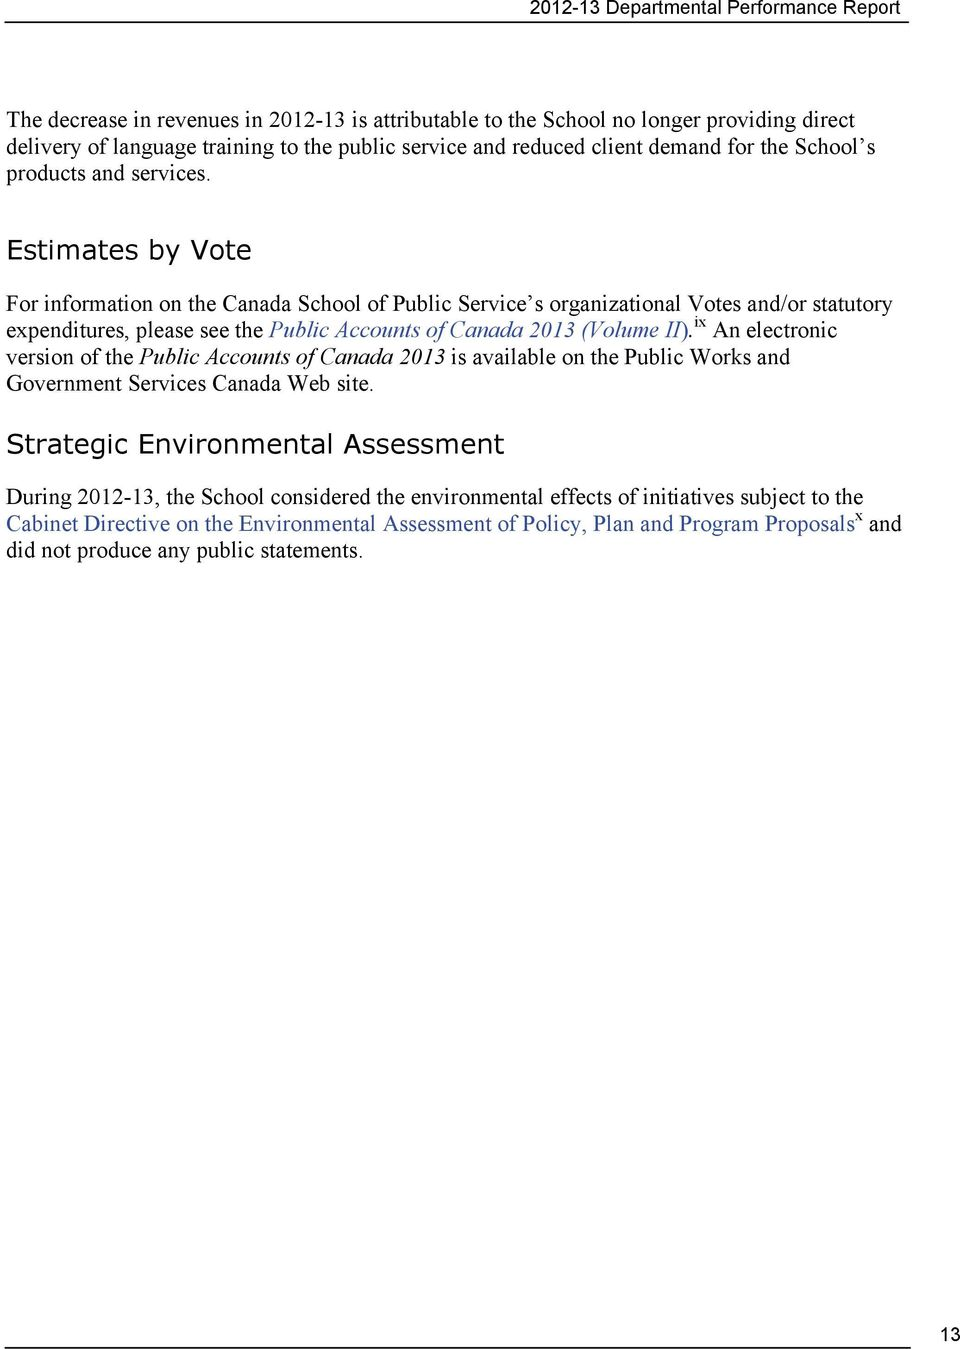 Estimates by Vote For information on the Canada School of Public Service s organizational Votes and/or statutory expenditures, please see the Public Accounts of Canada 2013 (Volume II).